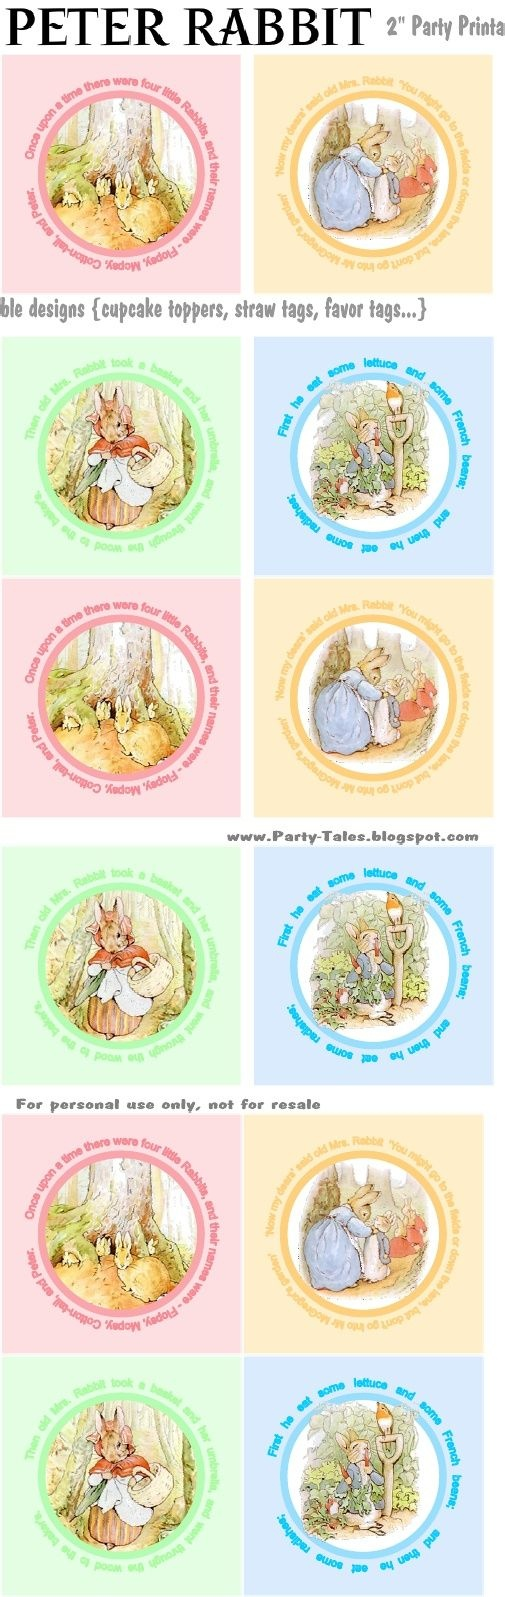 Peter Rabbit Cupcake Toppers Free To Print | Birthday Time! | Peter - Free Peter Rabbit Party Printables